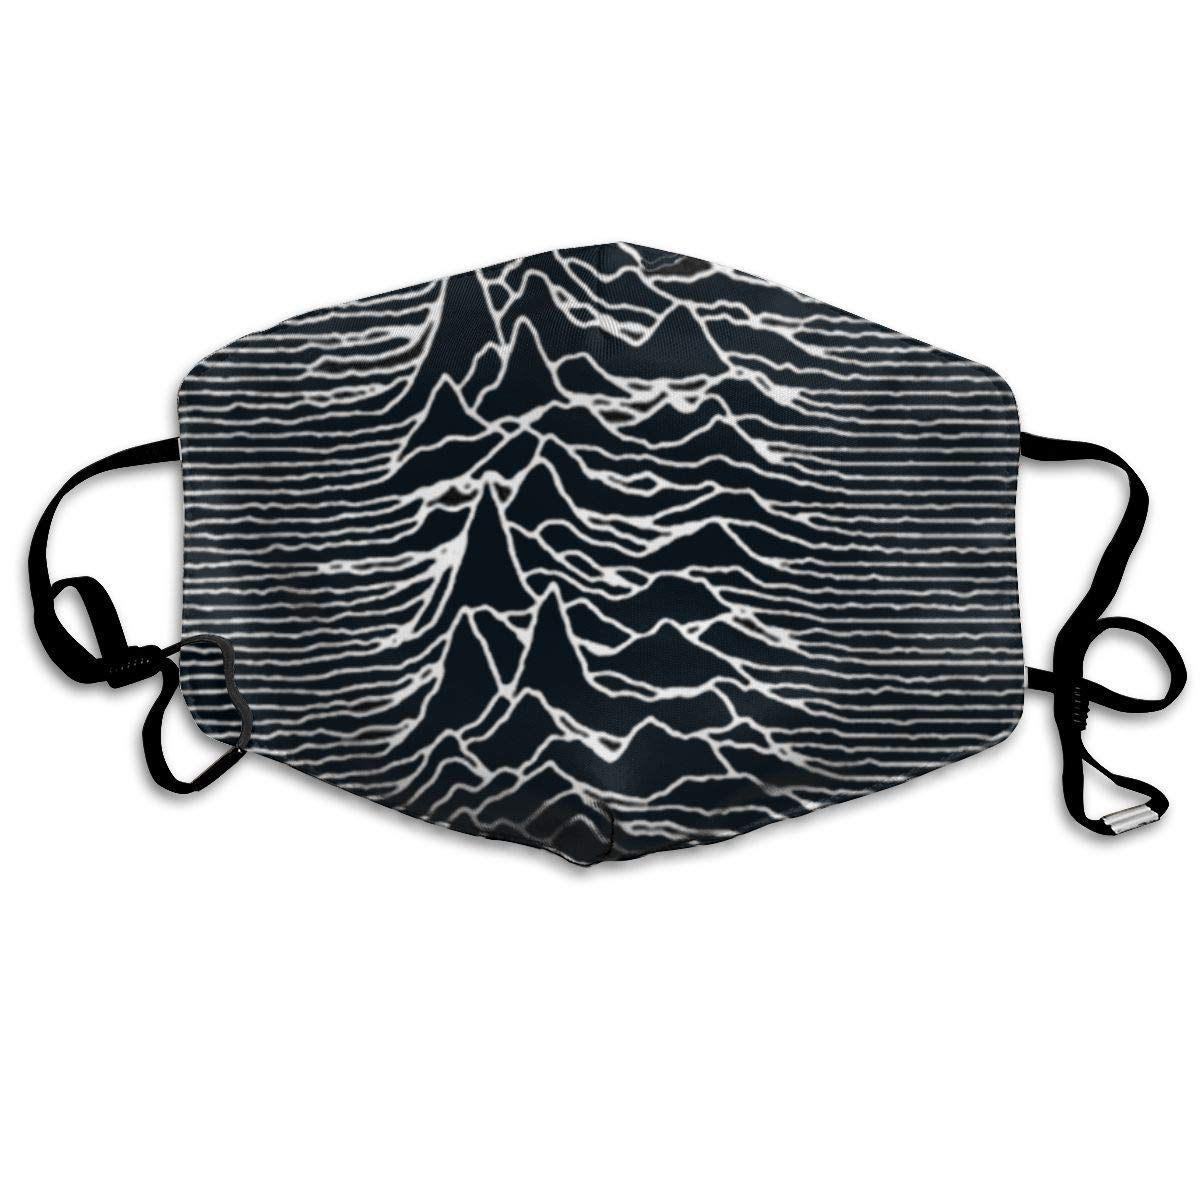 Mouth Mask Joy Division Unknown Pleasures Print Masks - Breathable Adjustable Windproof Mouth-Muffle, Camping Running For Women